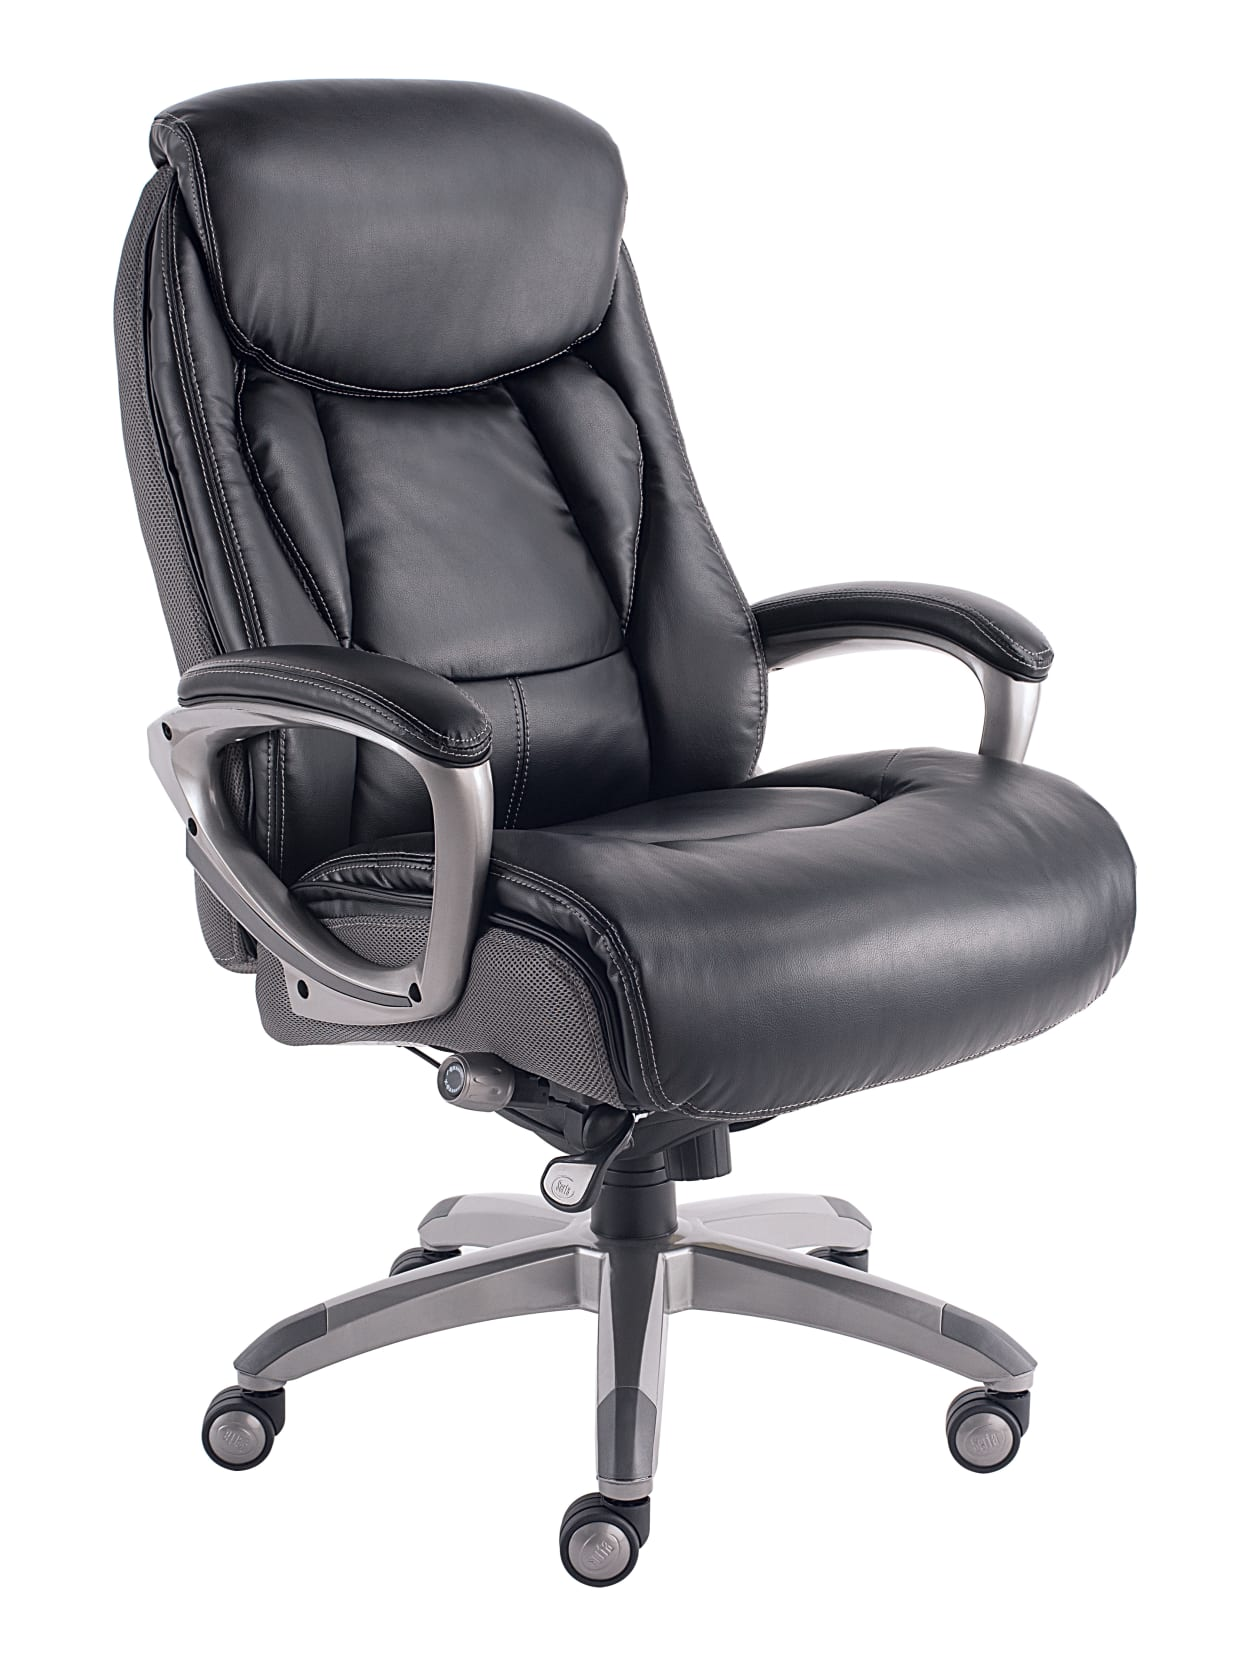 Serta Works MeshBonded Leather High Back Office Chair With Smart